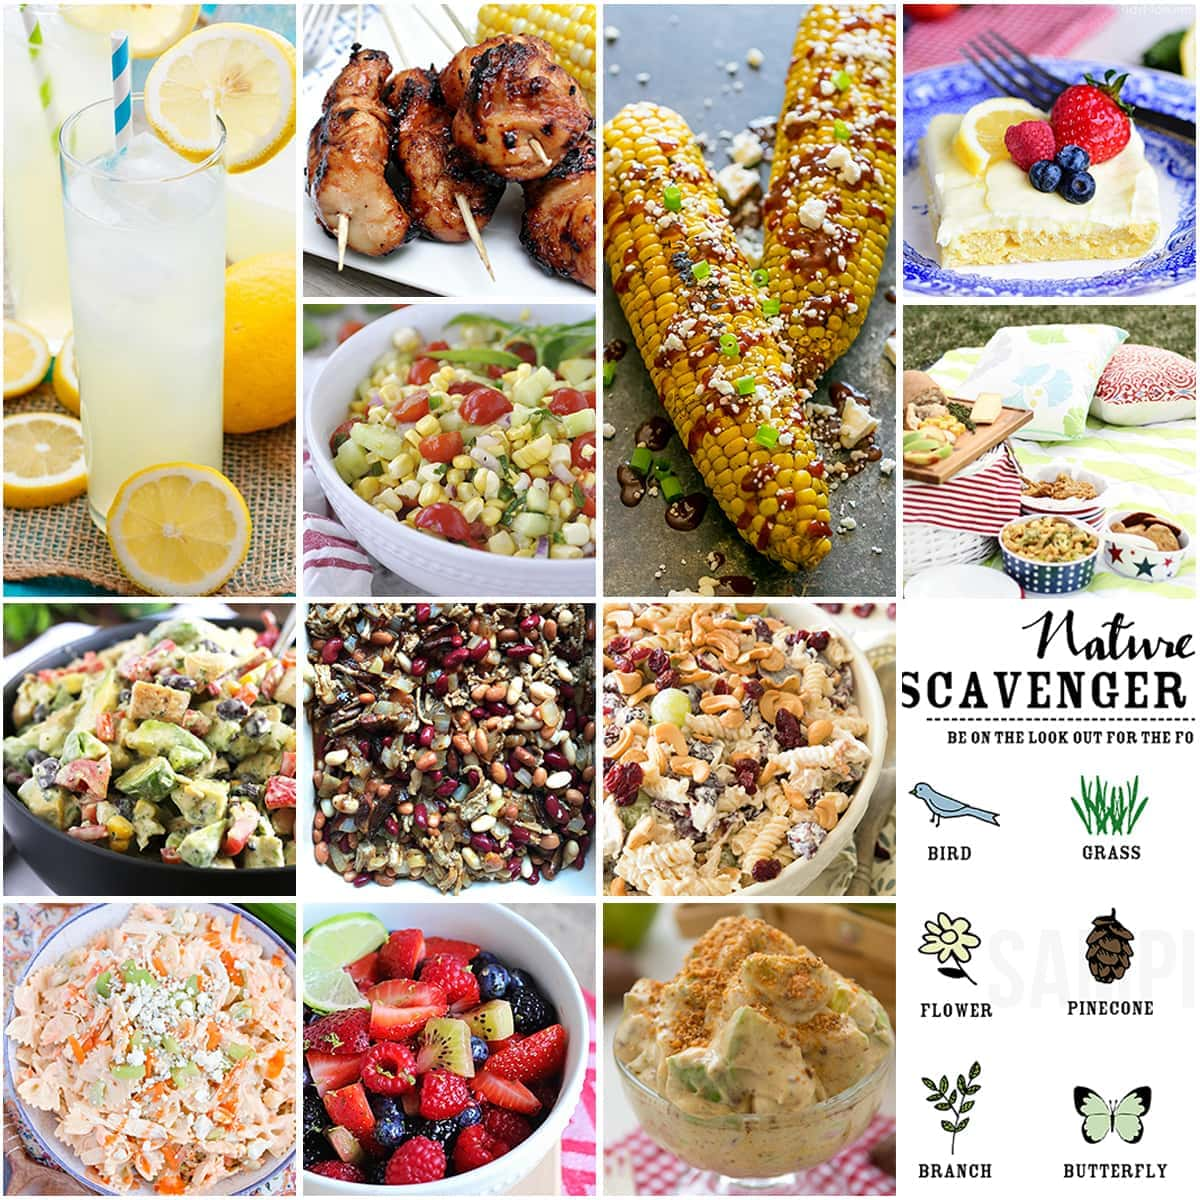 A collage of picnic food